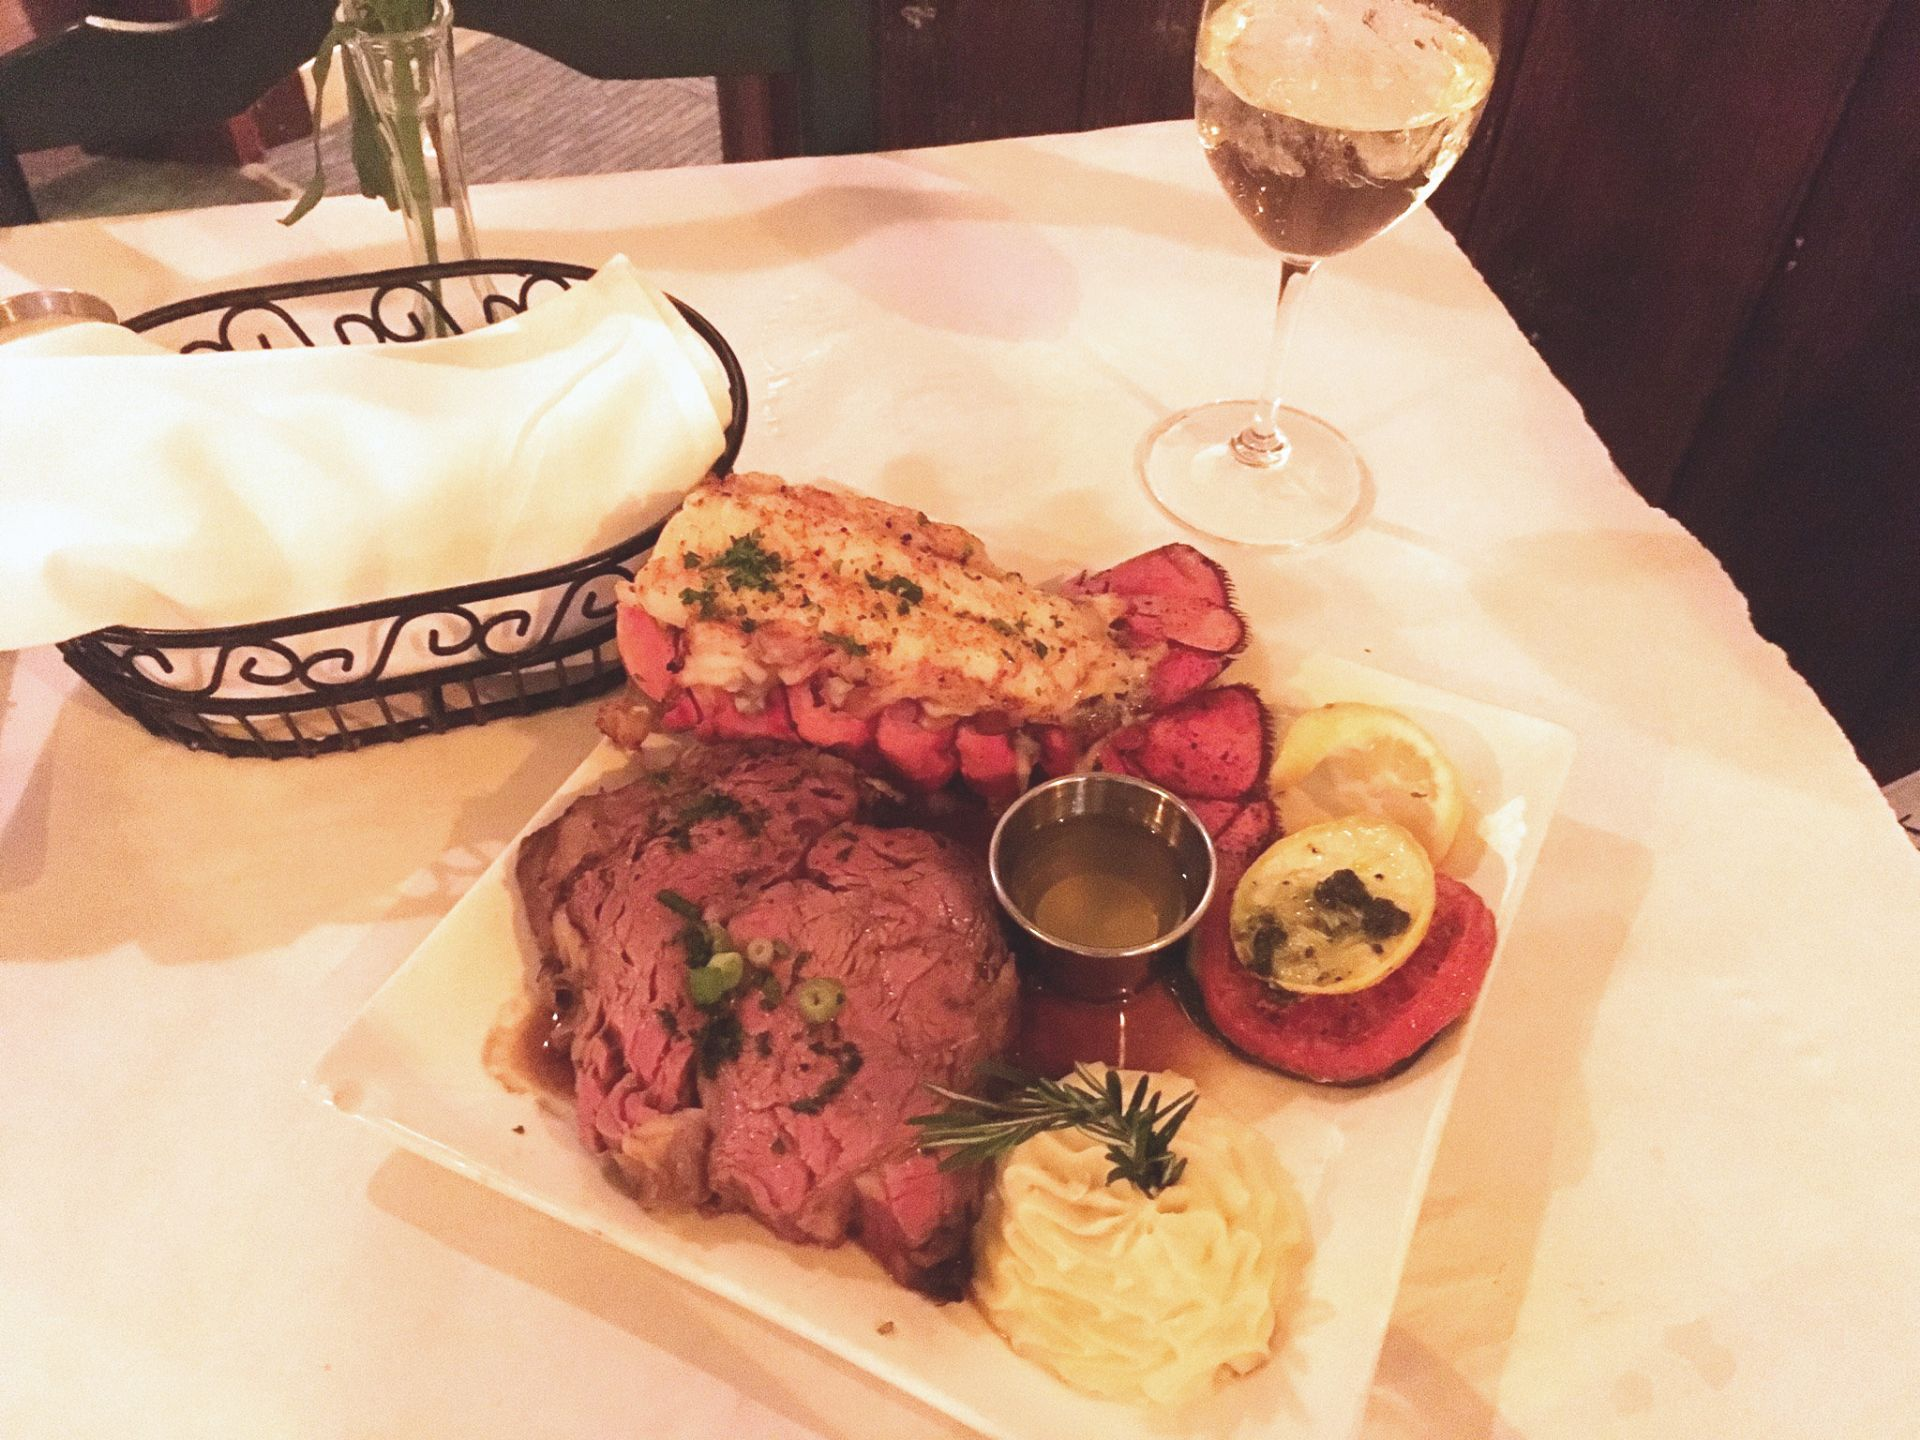 Recommendation The Parson S Table App Local Fried Green Tomatoes With Goat Cheese Dinner Slow Roasted P Slow Roasted Prime Rib Prime Rib Of Beef Au Jus